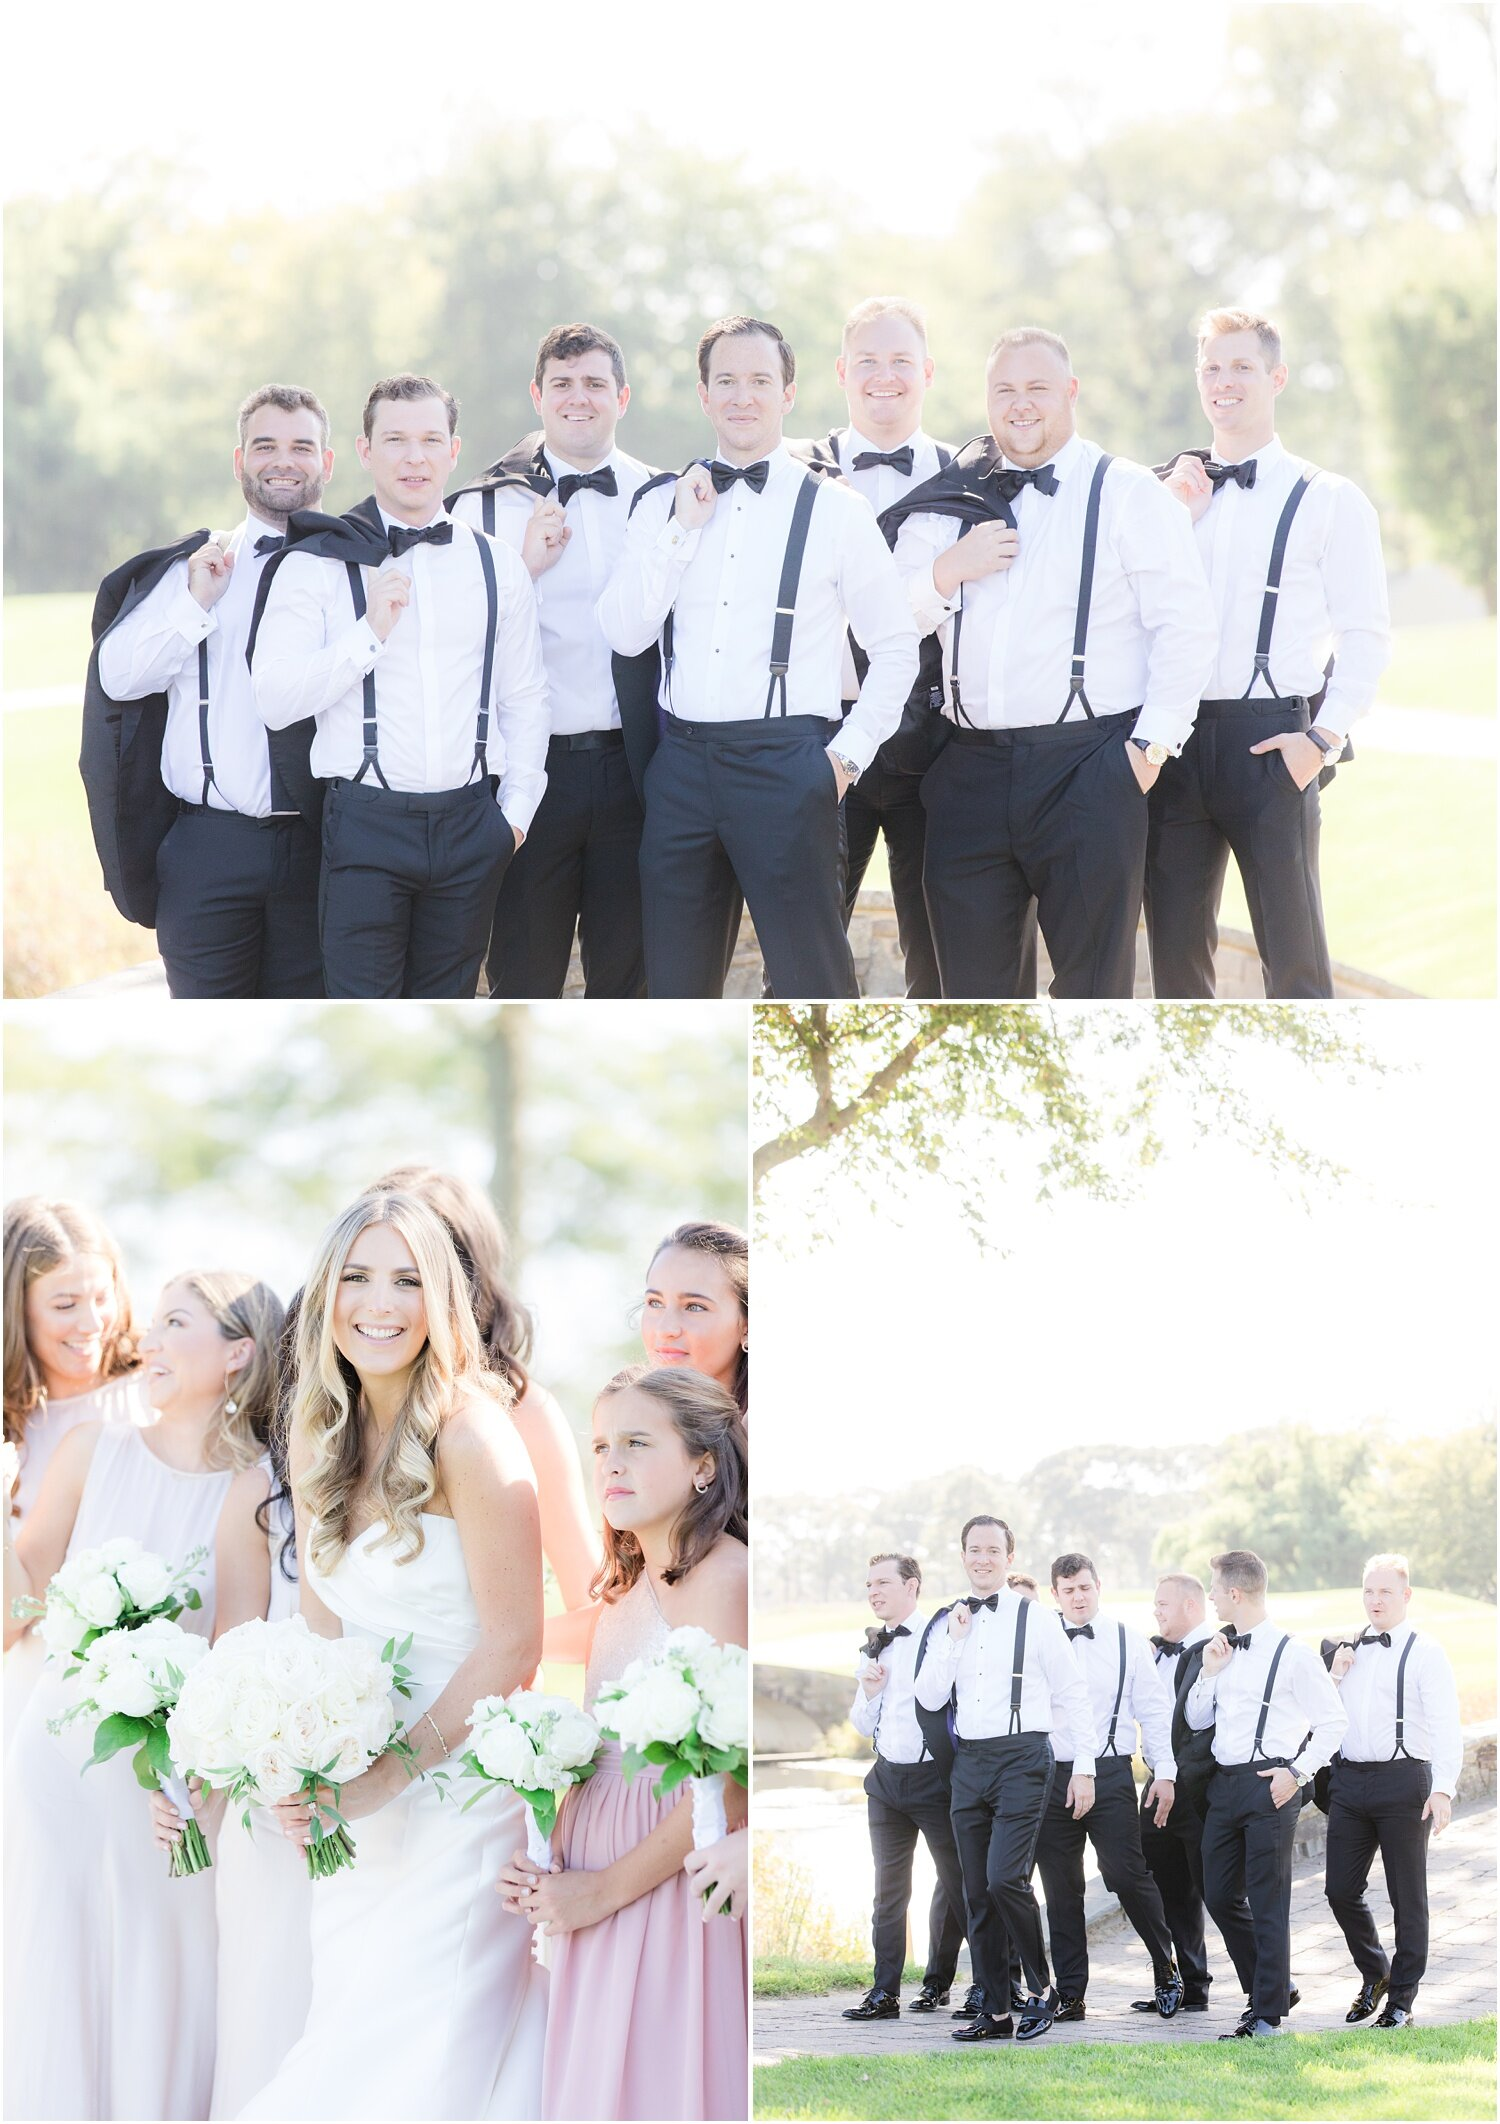 candid photos for bridesmaids and groomsmen.